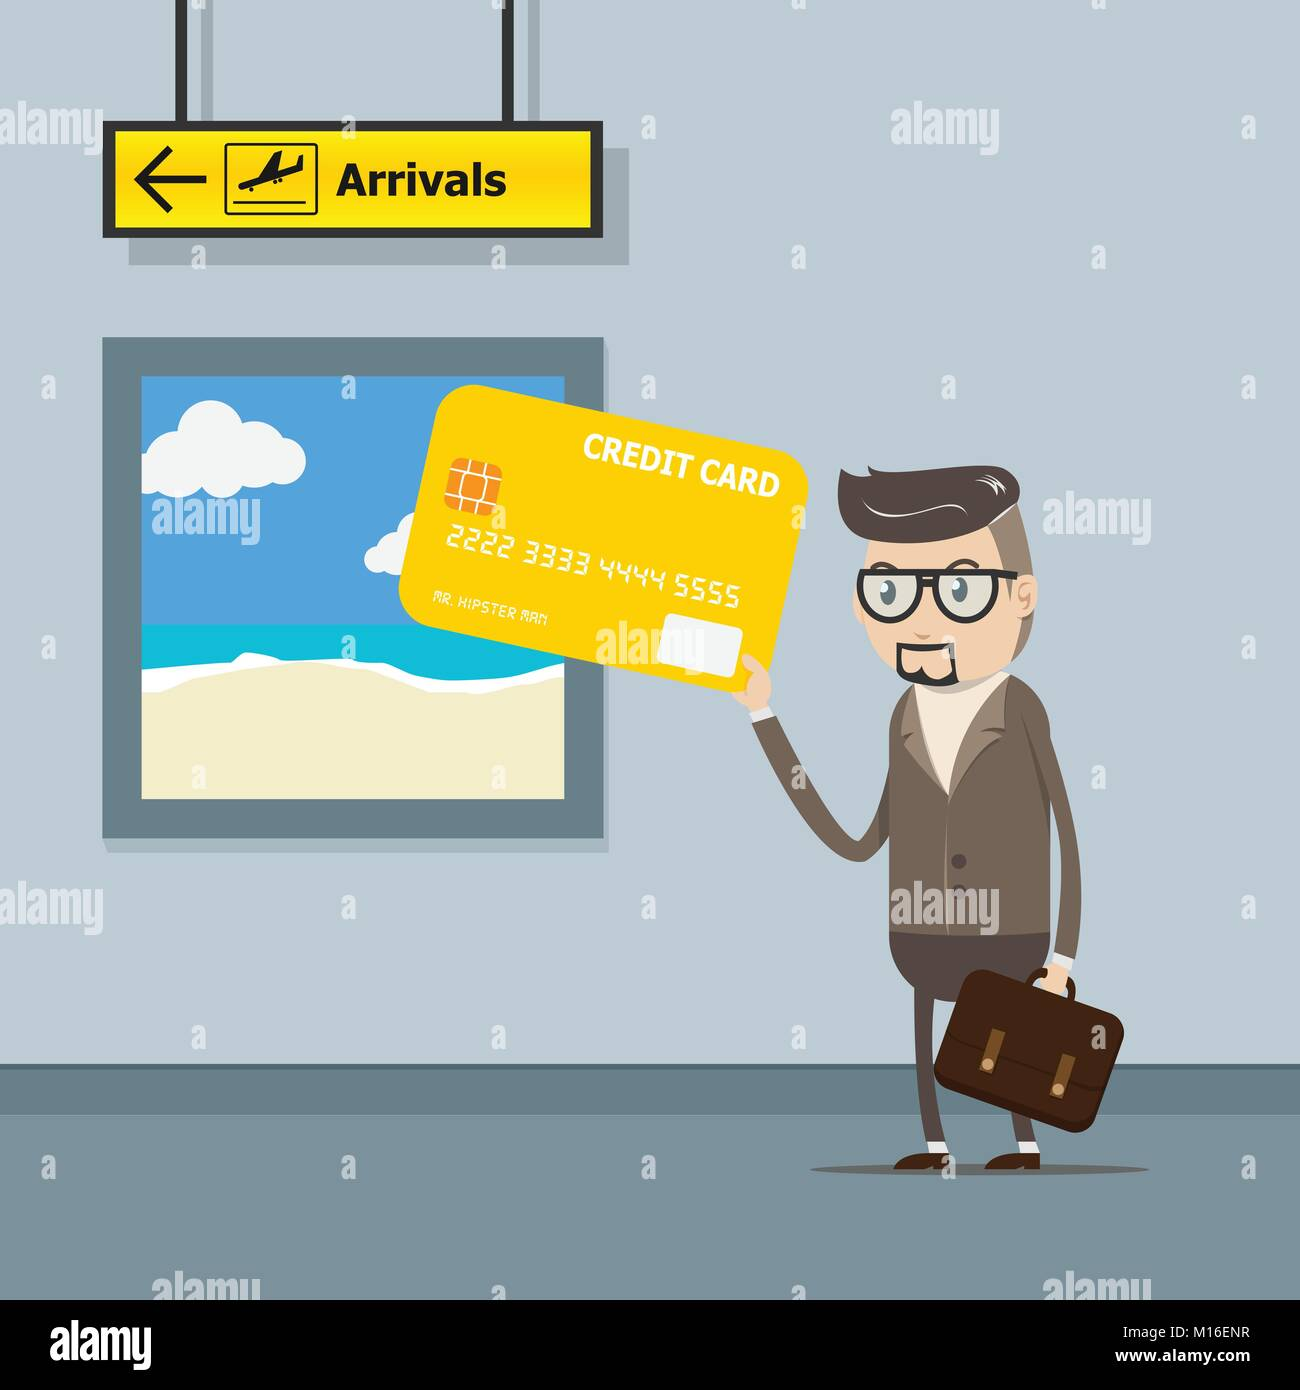 vector illustration EPS10. businessman use credit card for payment on travel trip at the airport with departure - Stock Vector